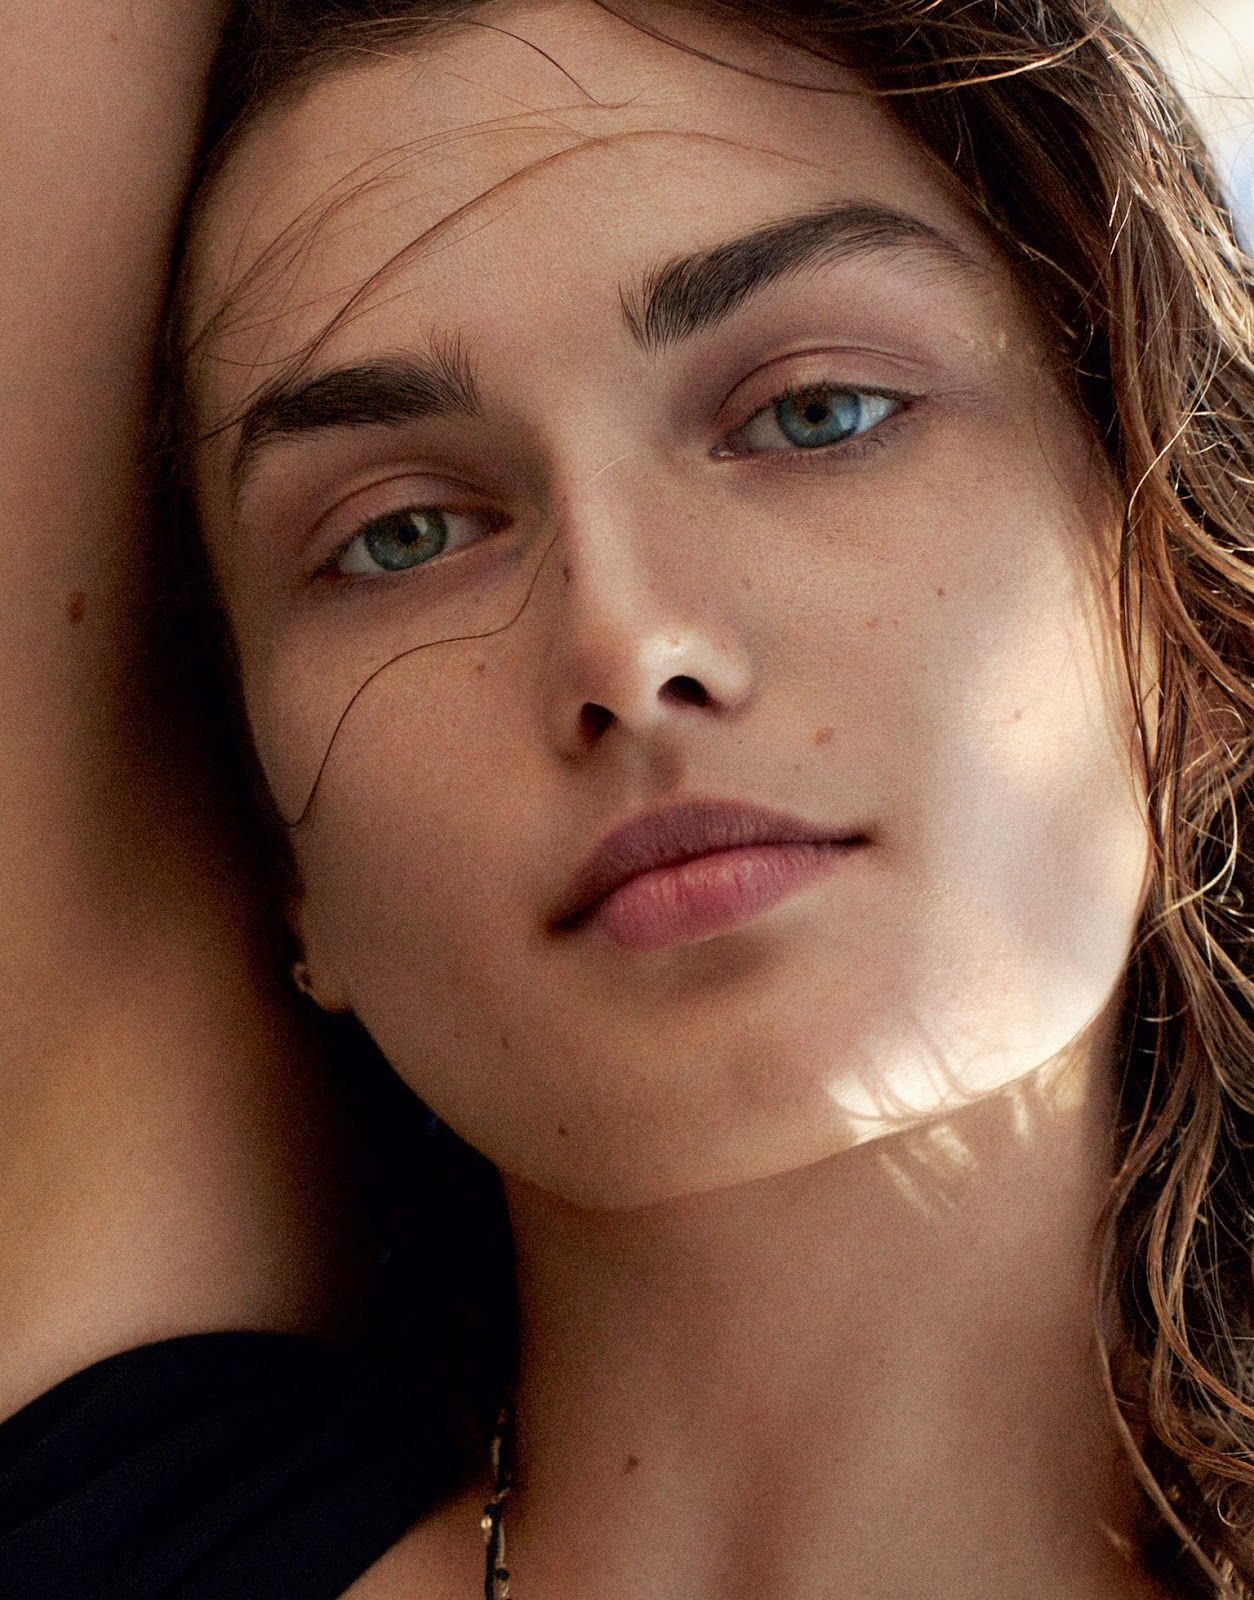 Young Andreea Diaconu nude (63 foto and video), Topless, Fappening, Boobs, swimsuit 2017